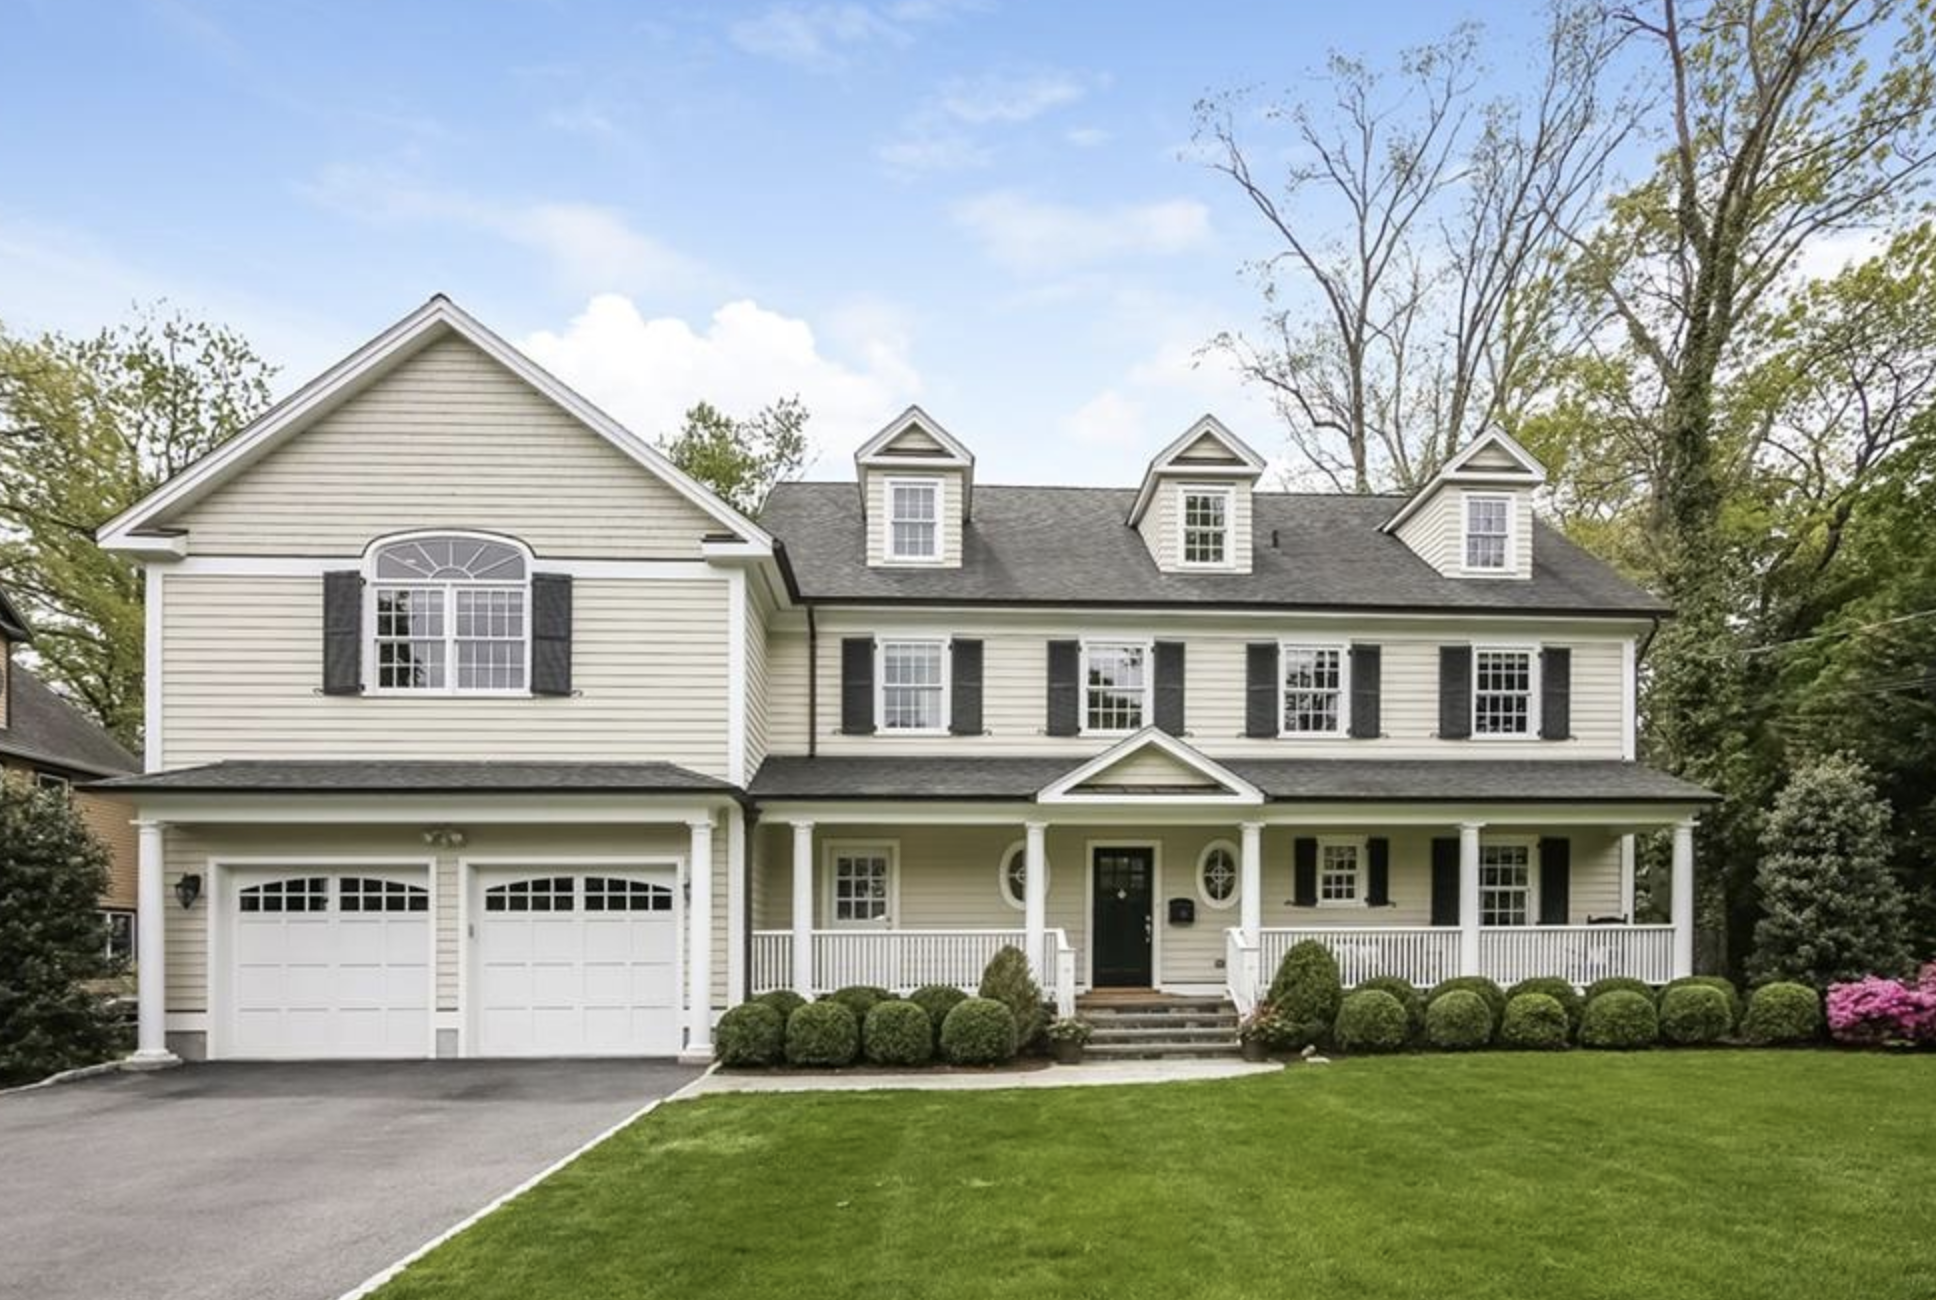 Houses for sale in clifton park ny